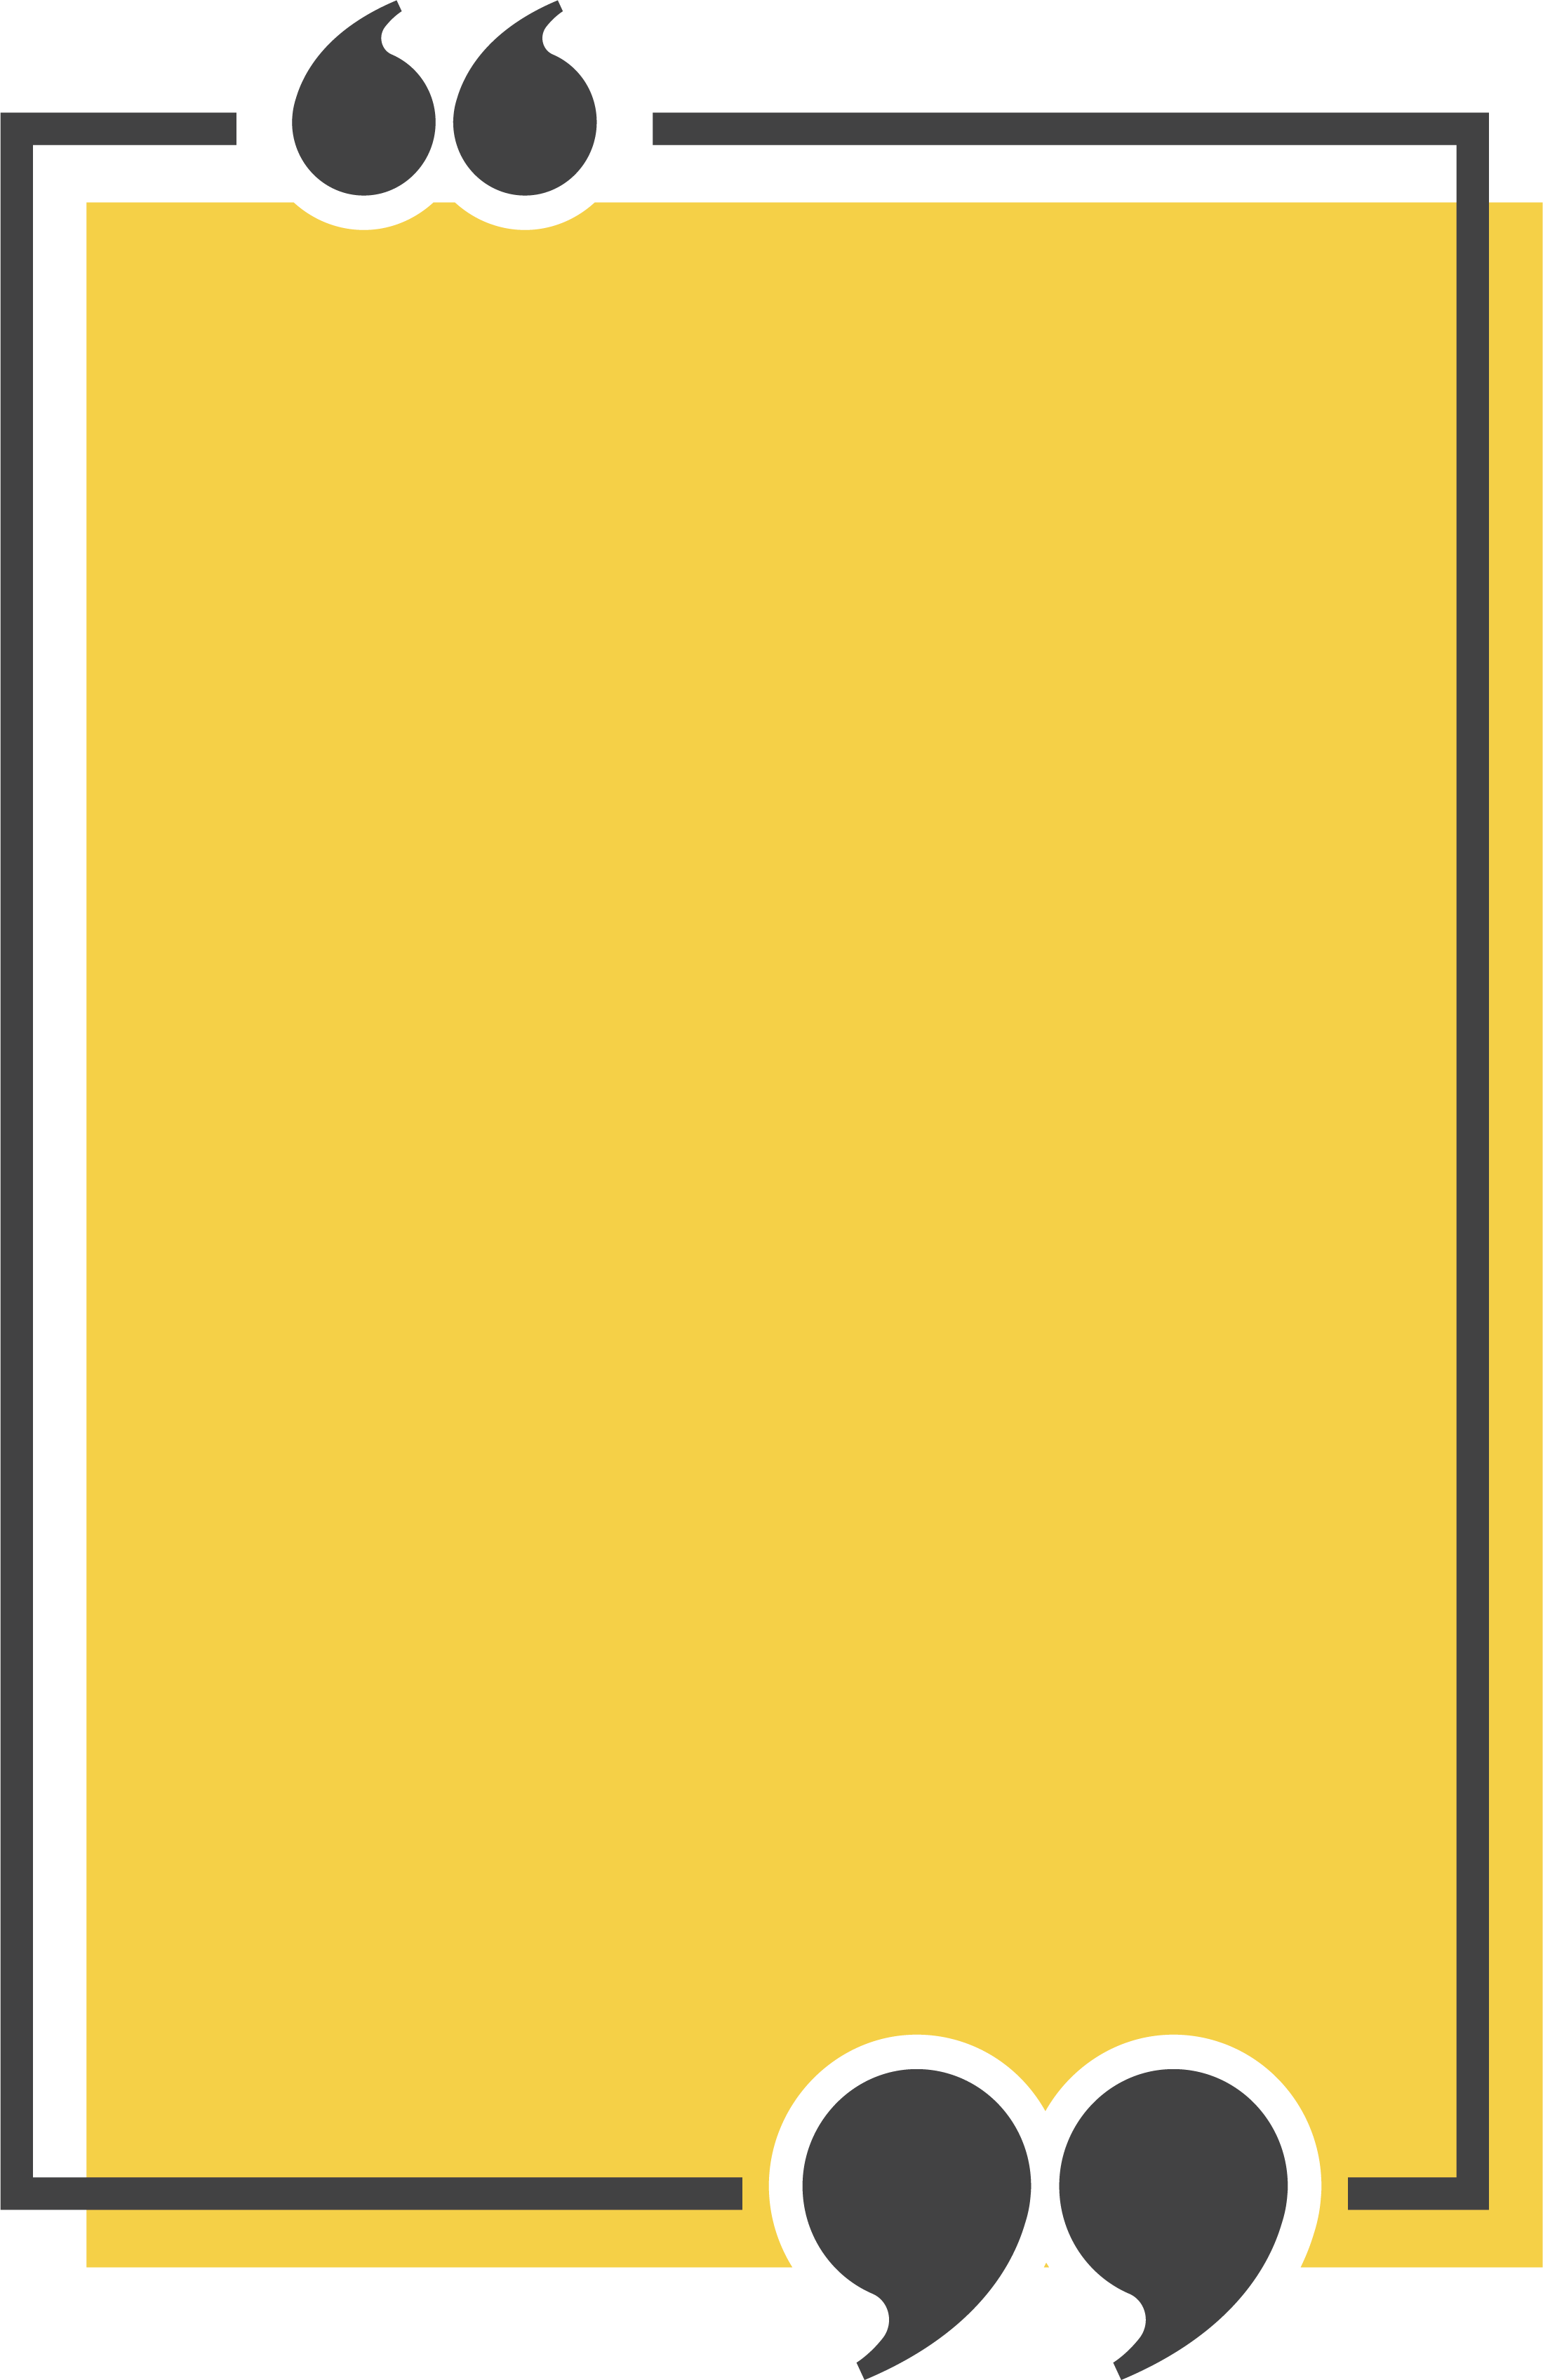 Square clipart yellow square. Congee text box quotation